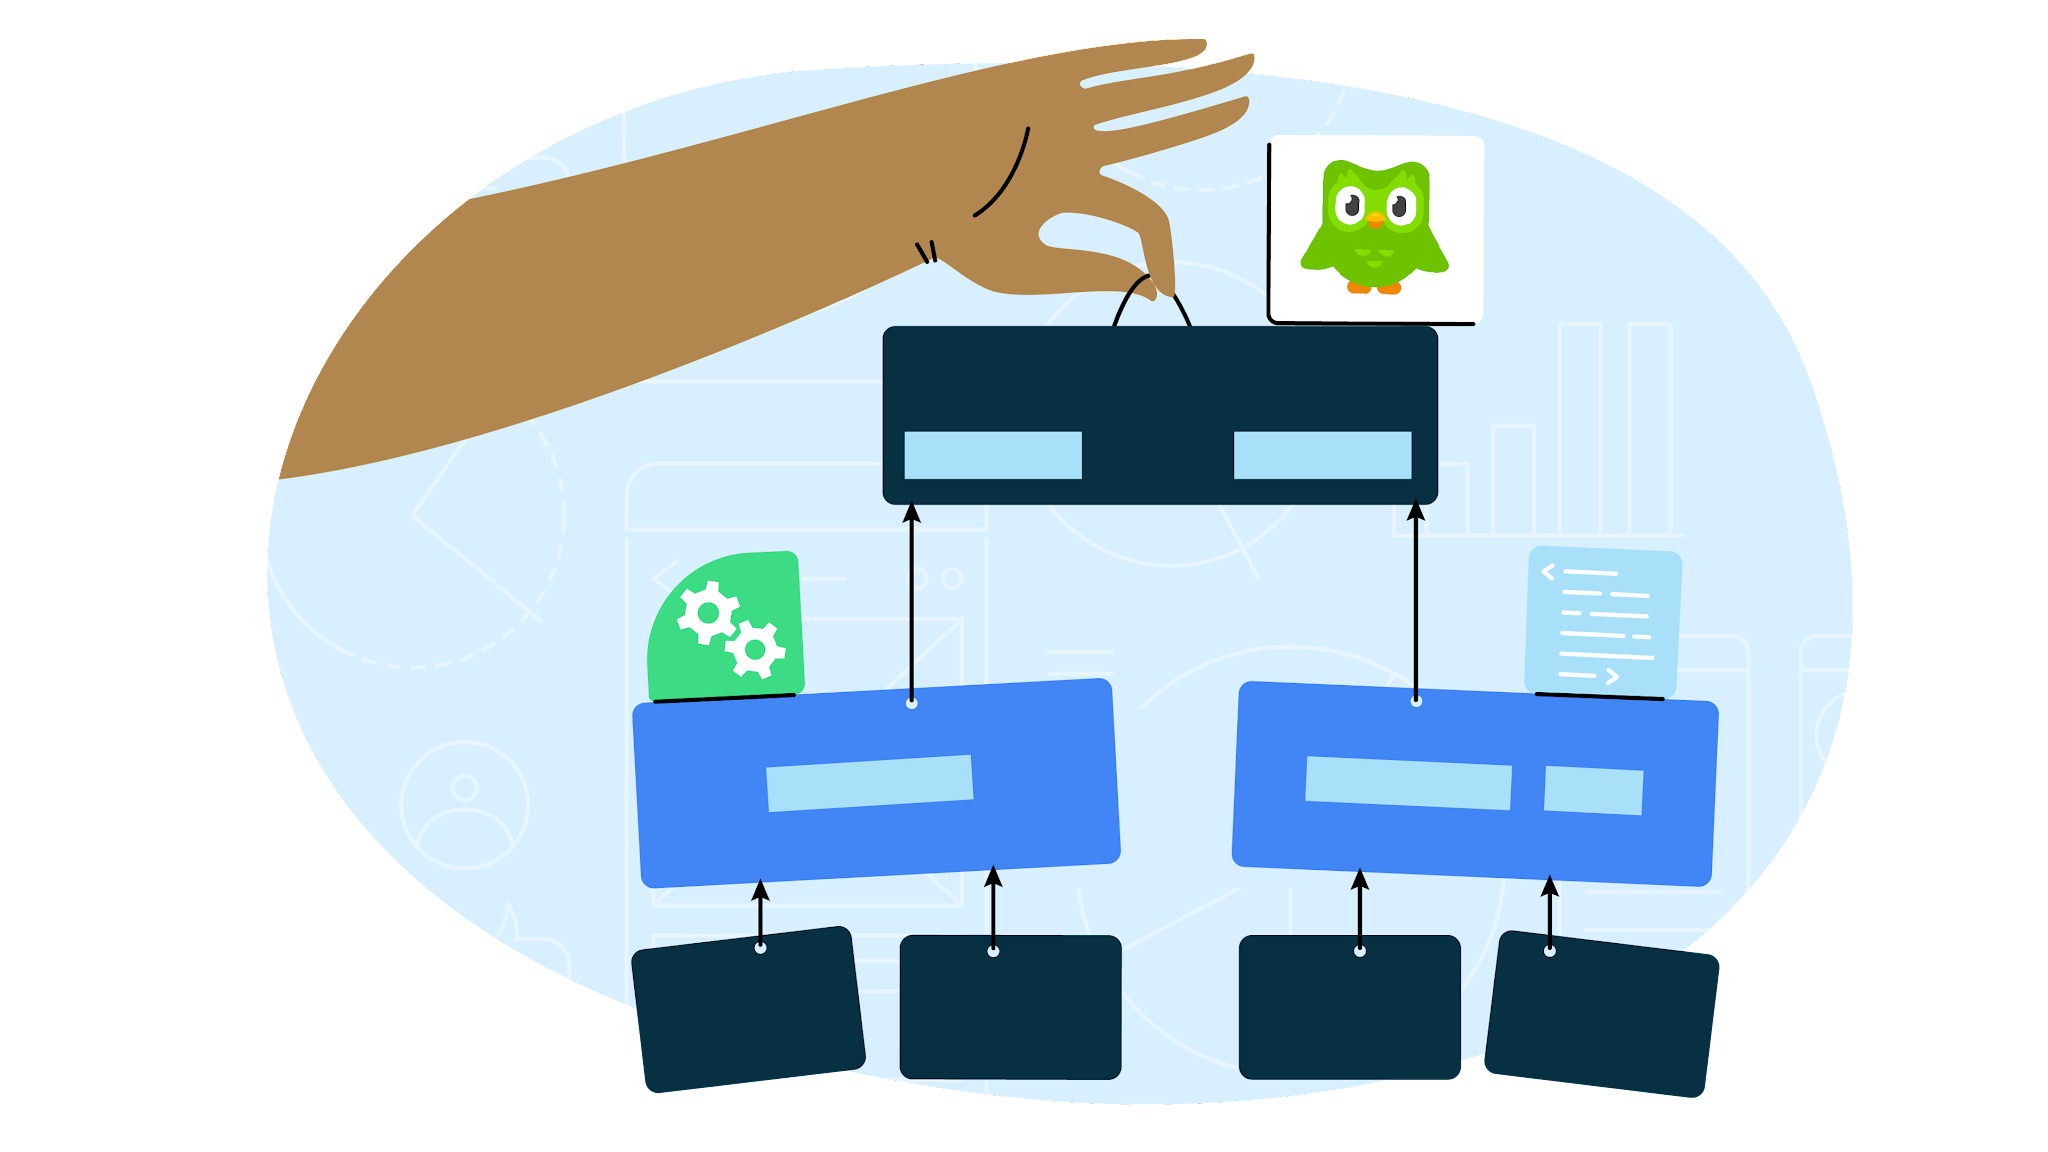 illustration of hand holding up a chart with the Duolingo bird sitting on top